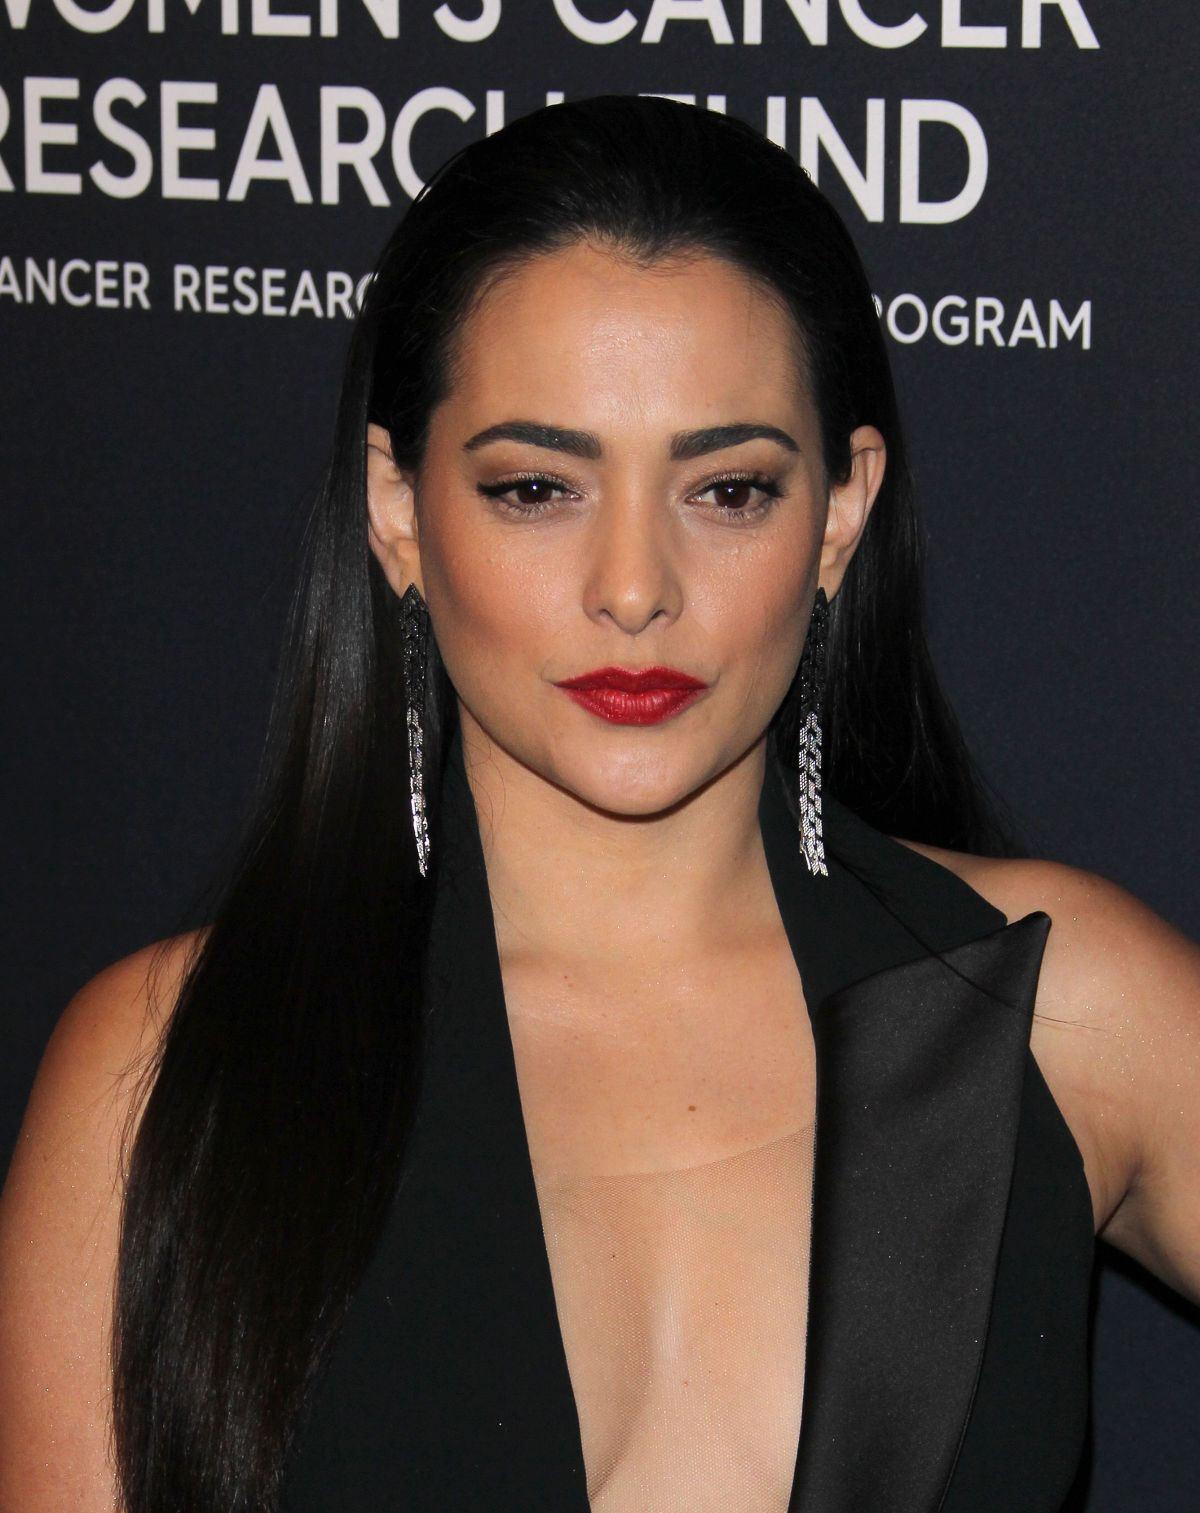 Cleavage Natalie Martinez naked (91 foto and video), Sexy, Fappening, Instagram, braless 2015